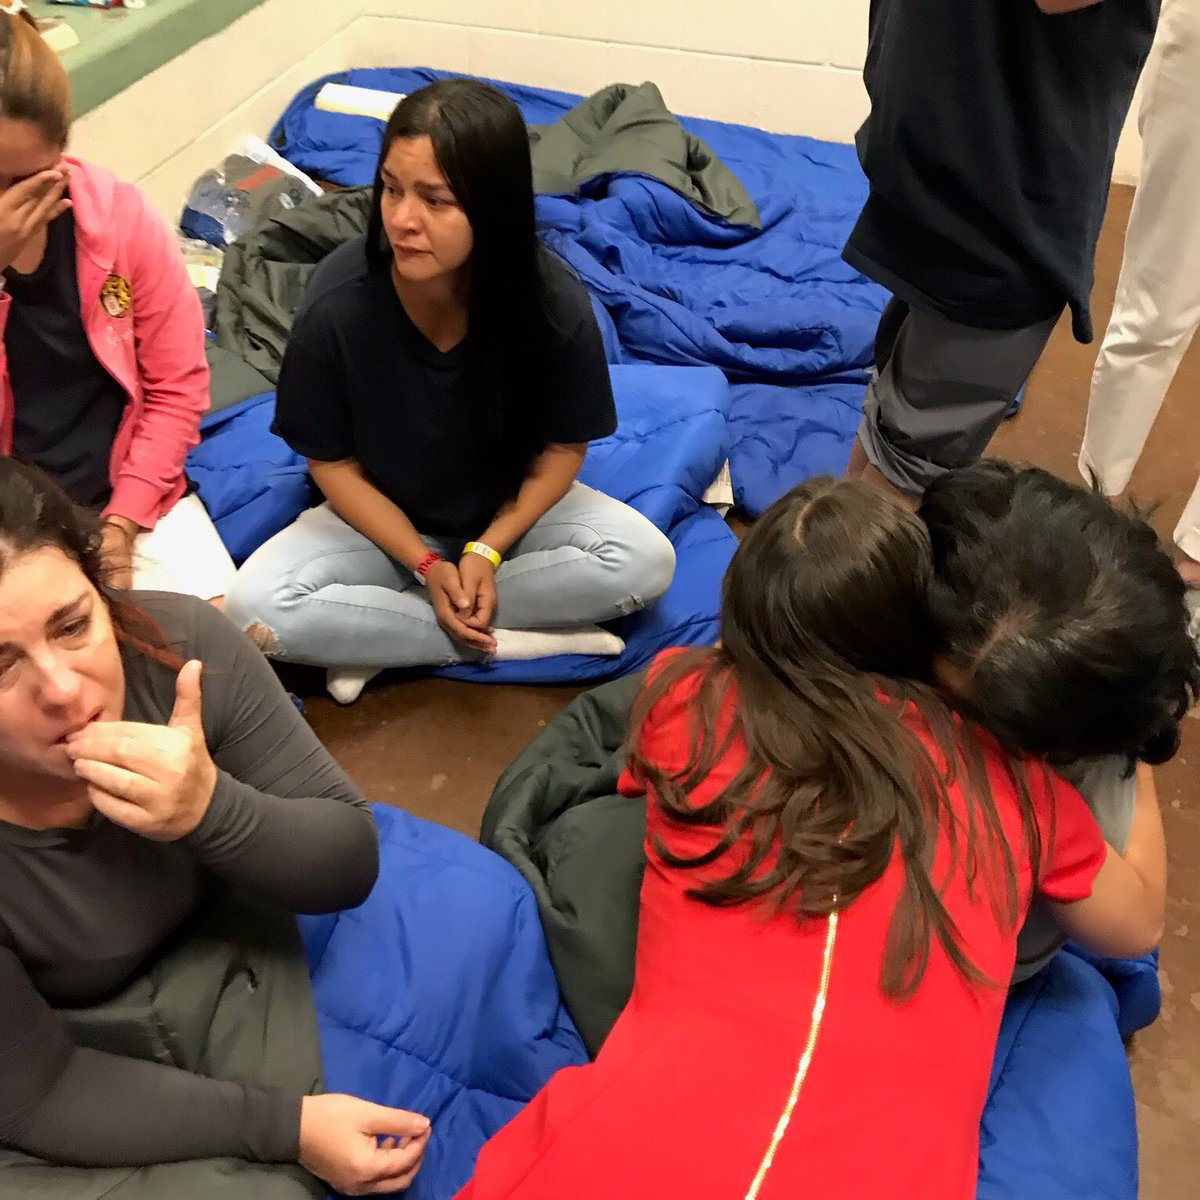 Another photo, taken by Rep. Castro and posted by Rep. Ocasio-Cortez, of women in one detention facility. Rep. Ocasio-Cortez is embracing one of the women in the lower-right corner of the photo.